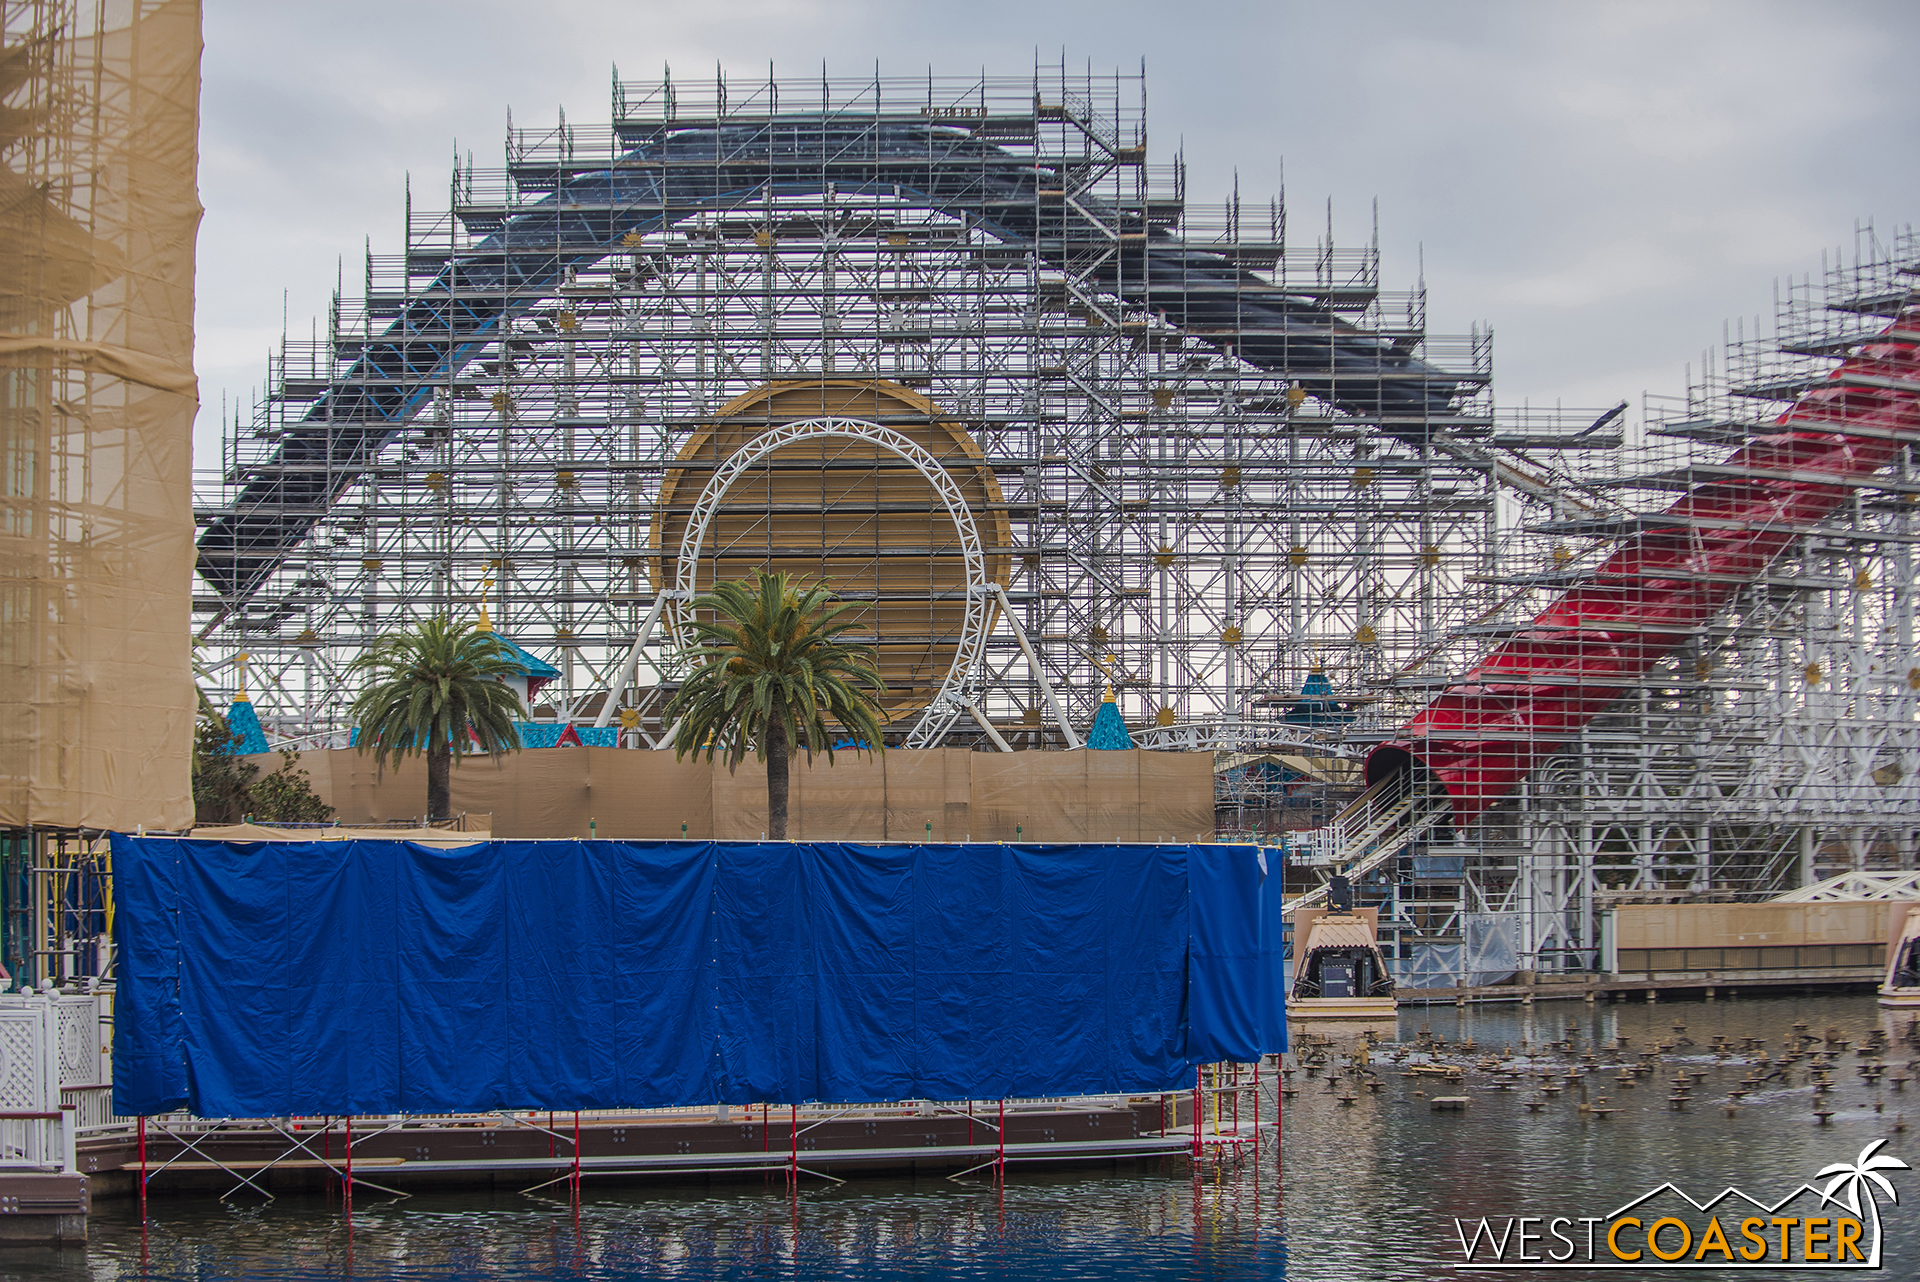 Work continues on the outdoor lower deck, though they've placed tarps to block off direct sight from all the areas that could overlook it.